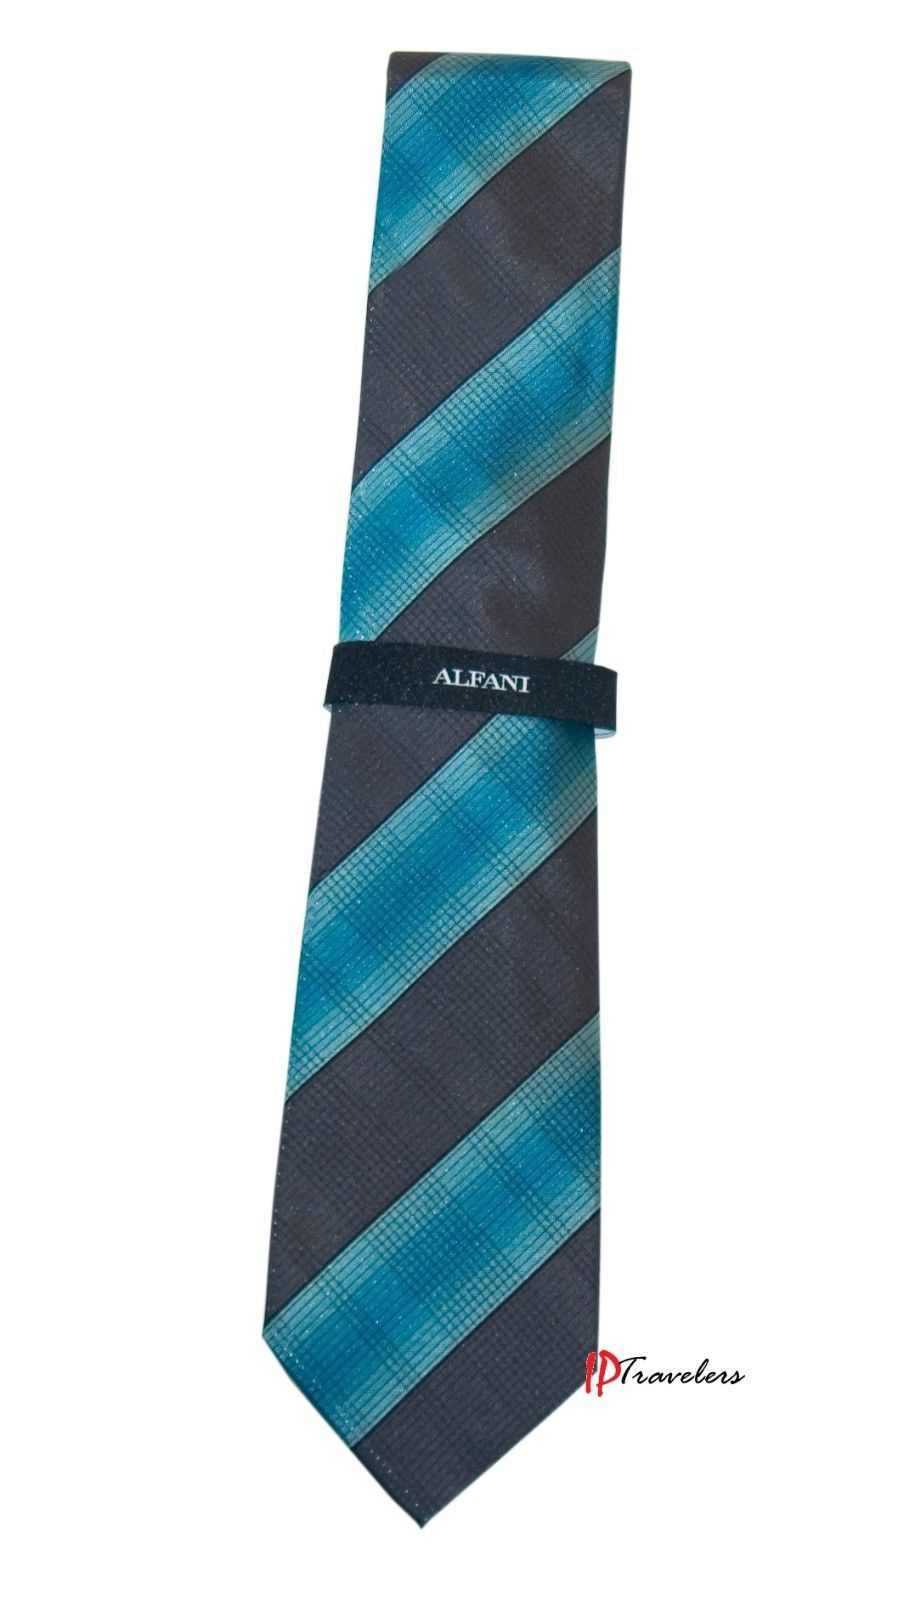 Alfani Men's Neck Tie Aqua Blue with Black Stripes Silk Classic Length $49.50